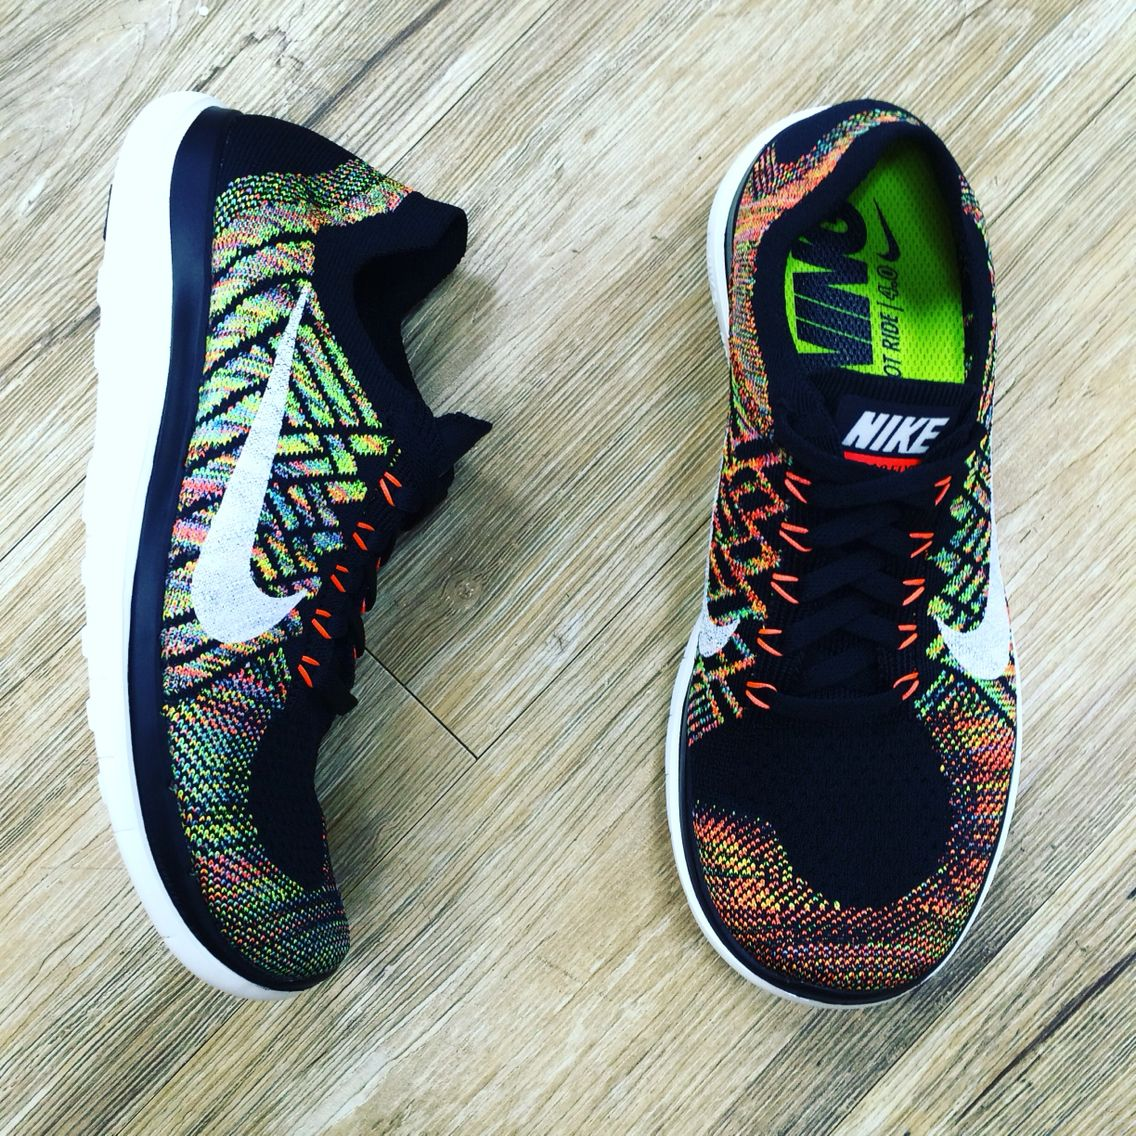 e1985b619d8 Details about WOMENS 6 NIKE FREE 4.0 FLYKNIT RUNNING SHOES BLUE ...